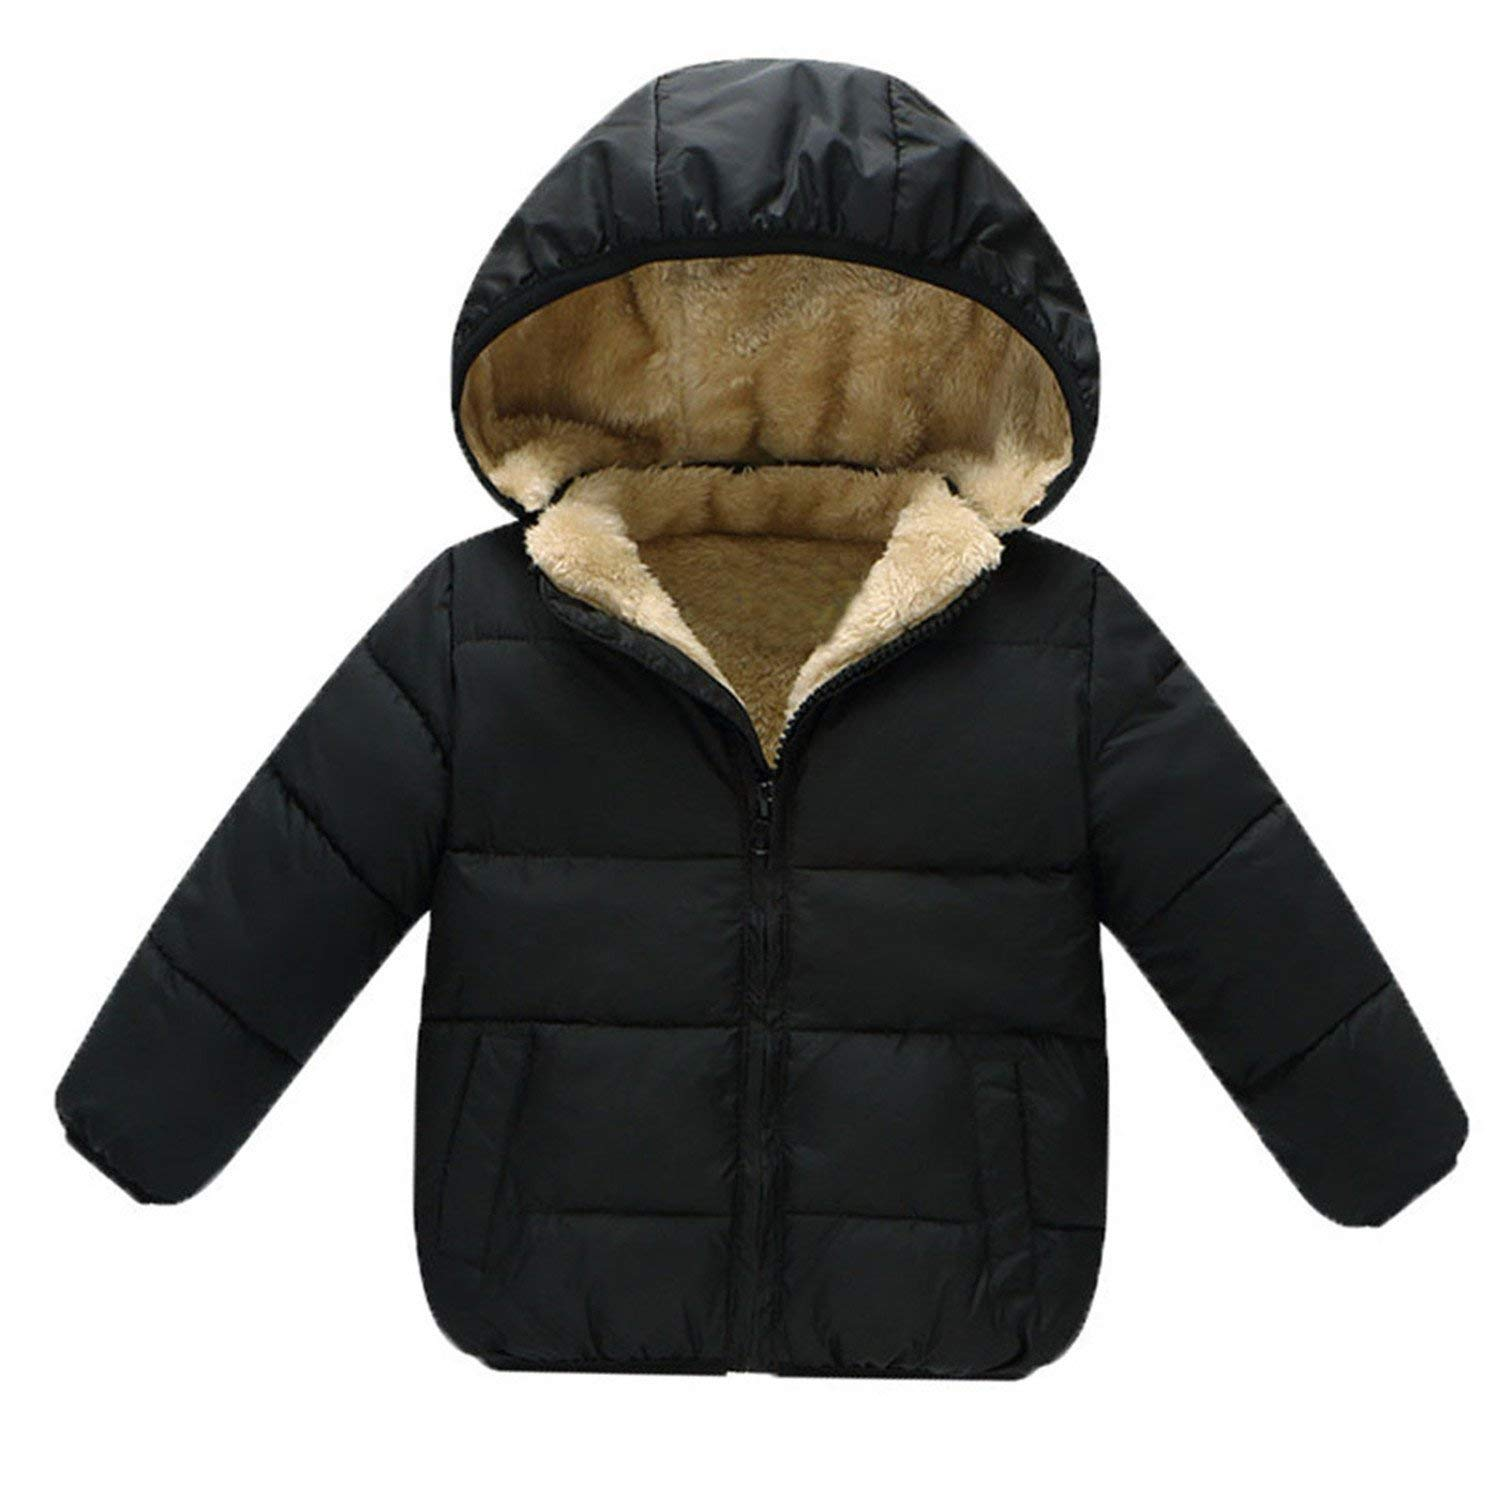 8df27ee5ce5 Get Quotations · Baby Girl Jacket Children Girl Warm Coat Little Girl  Clothes Winter Boys Infant Clothes Kids Winter